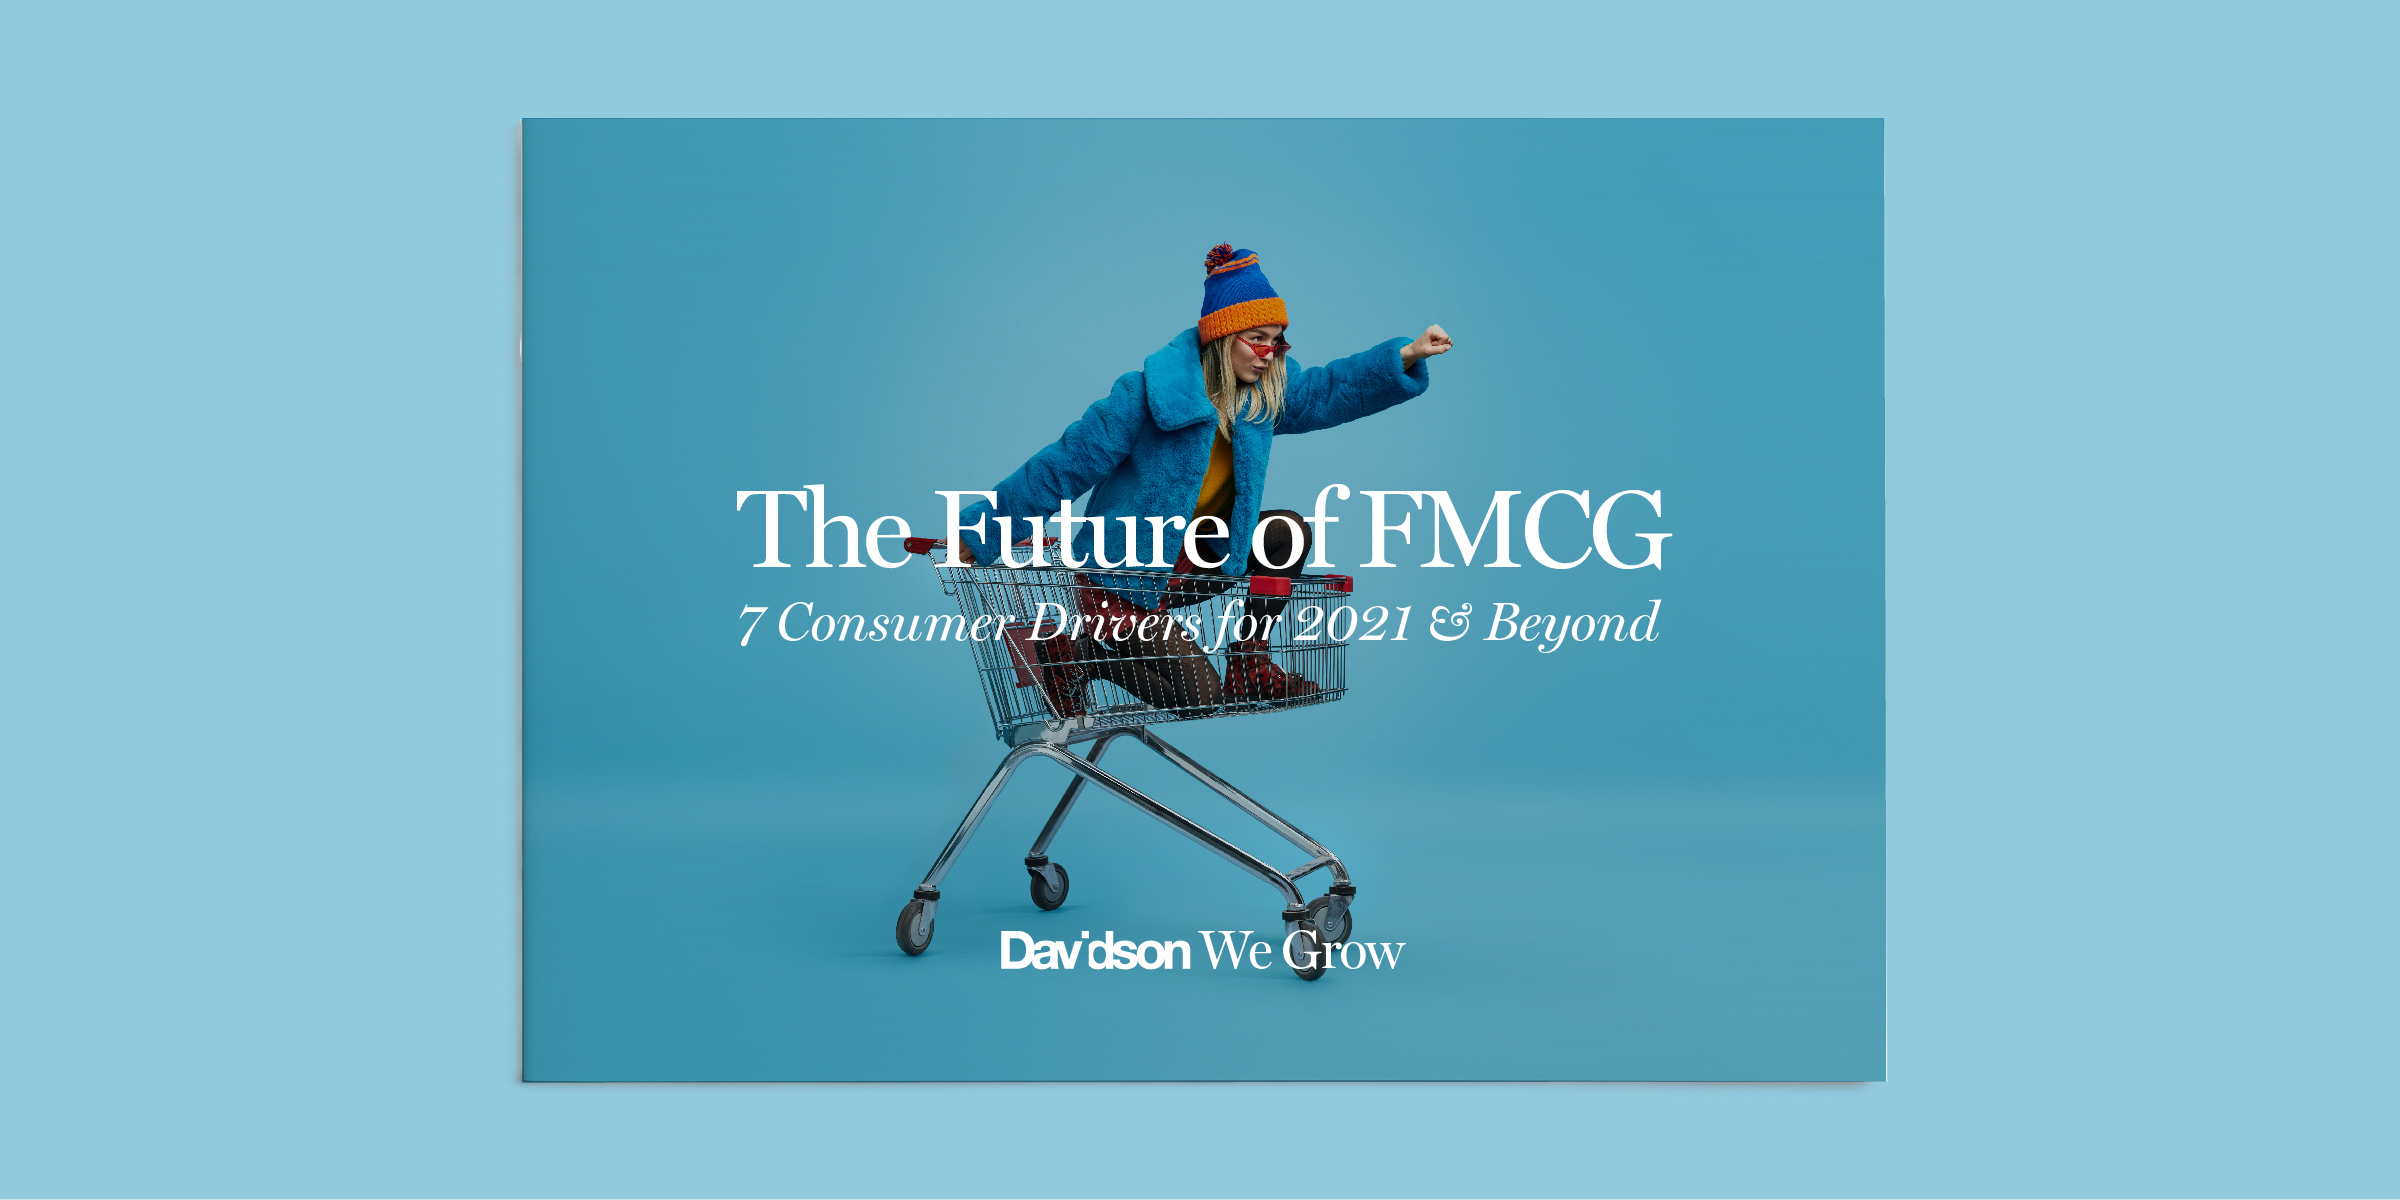 The Future of FMCG